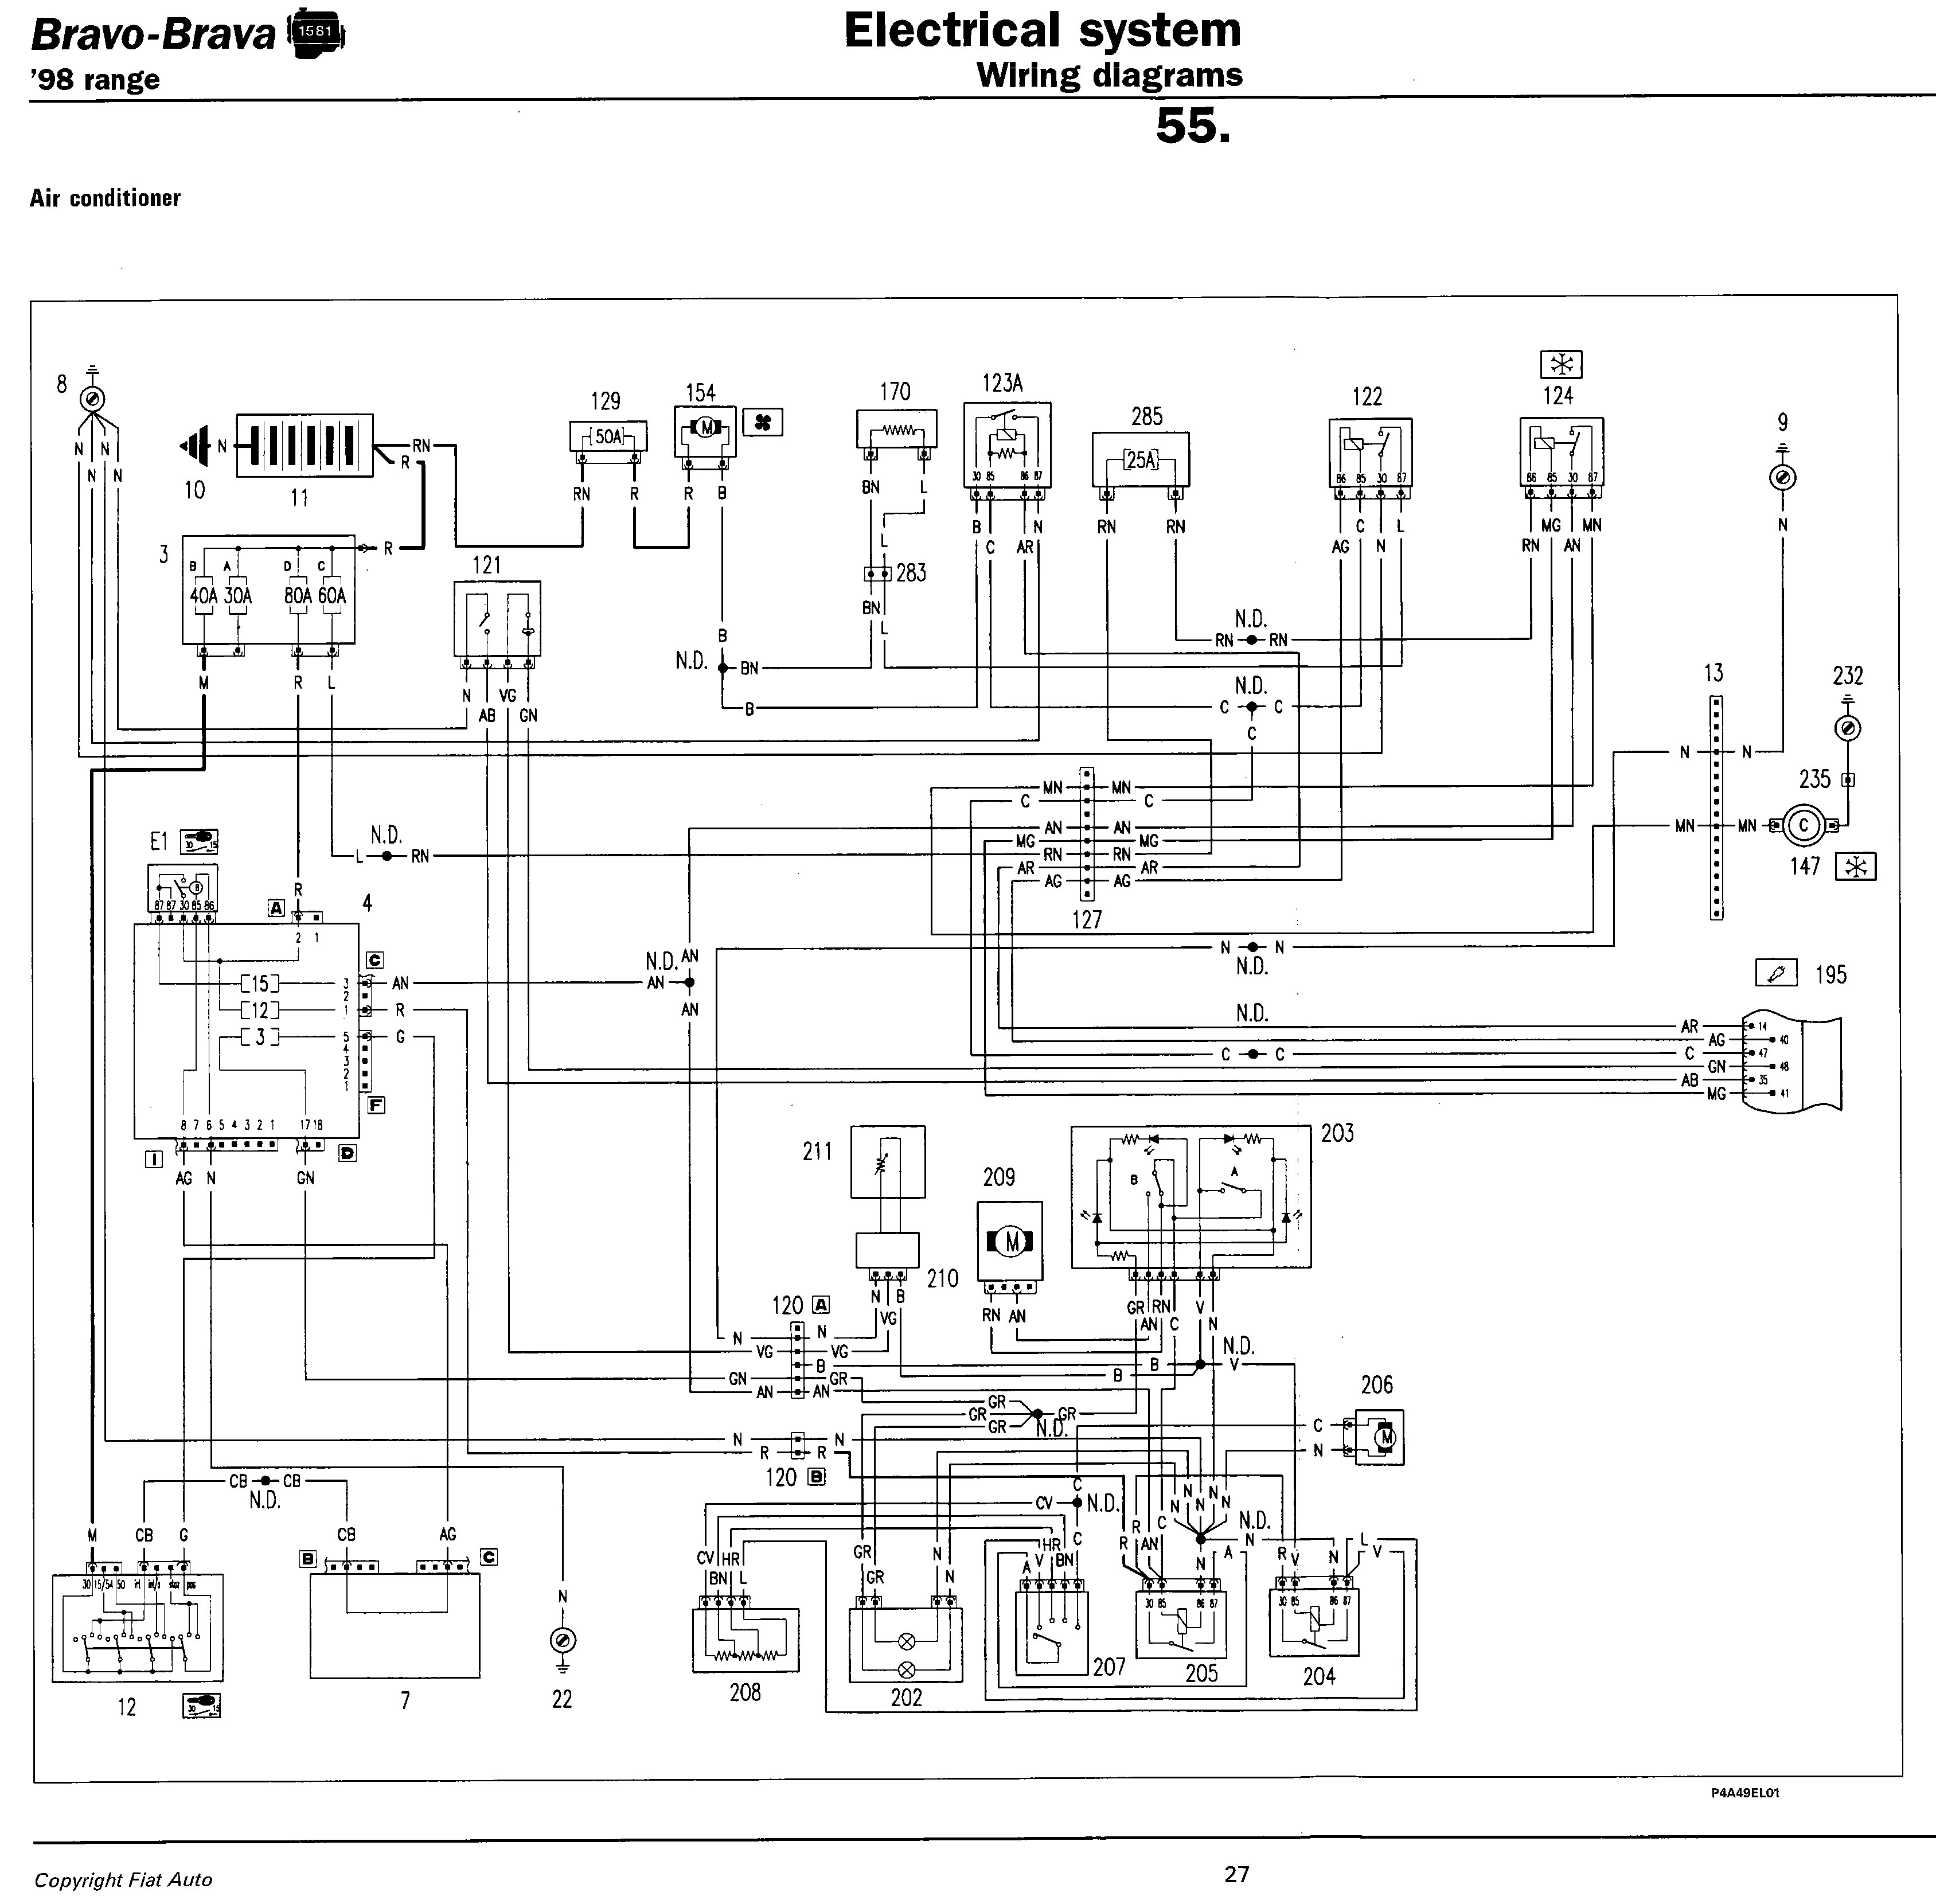 wiring diagram citroen dispatch van wiring diagram for fiat scudo wiring diagram data  wiring diagram for fiat scudo wiring